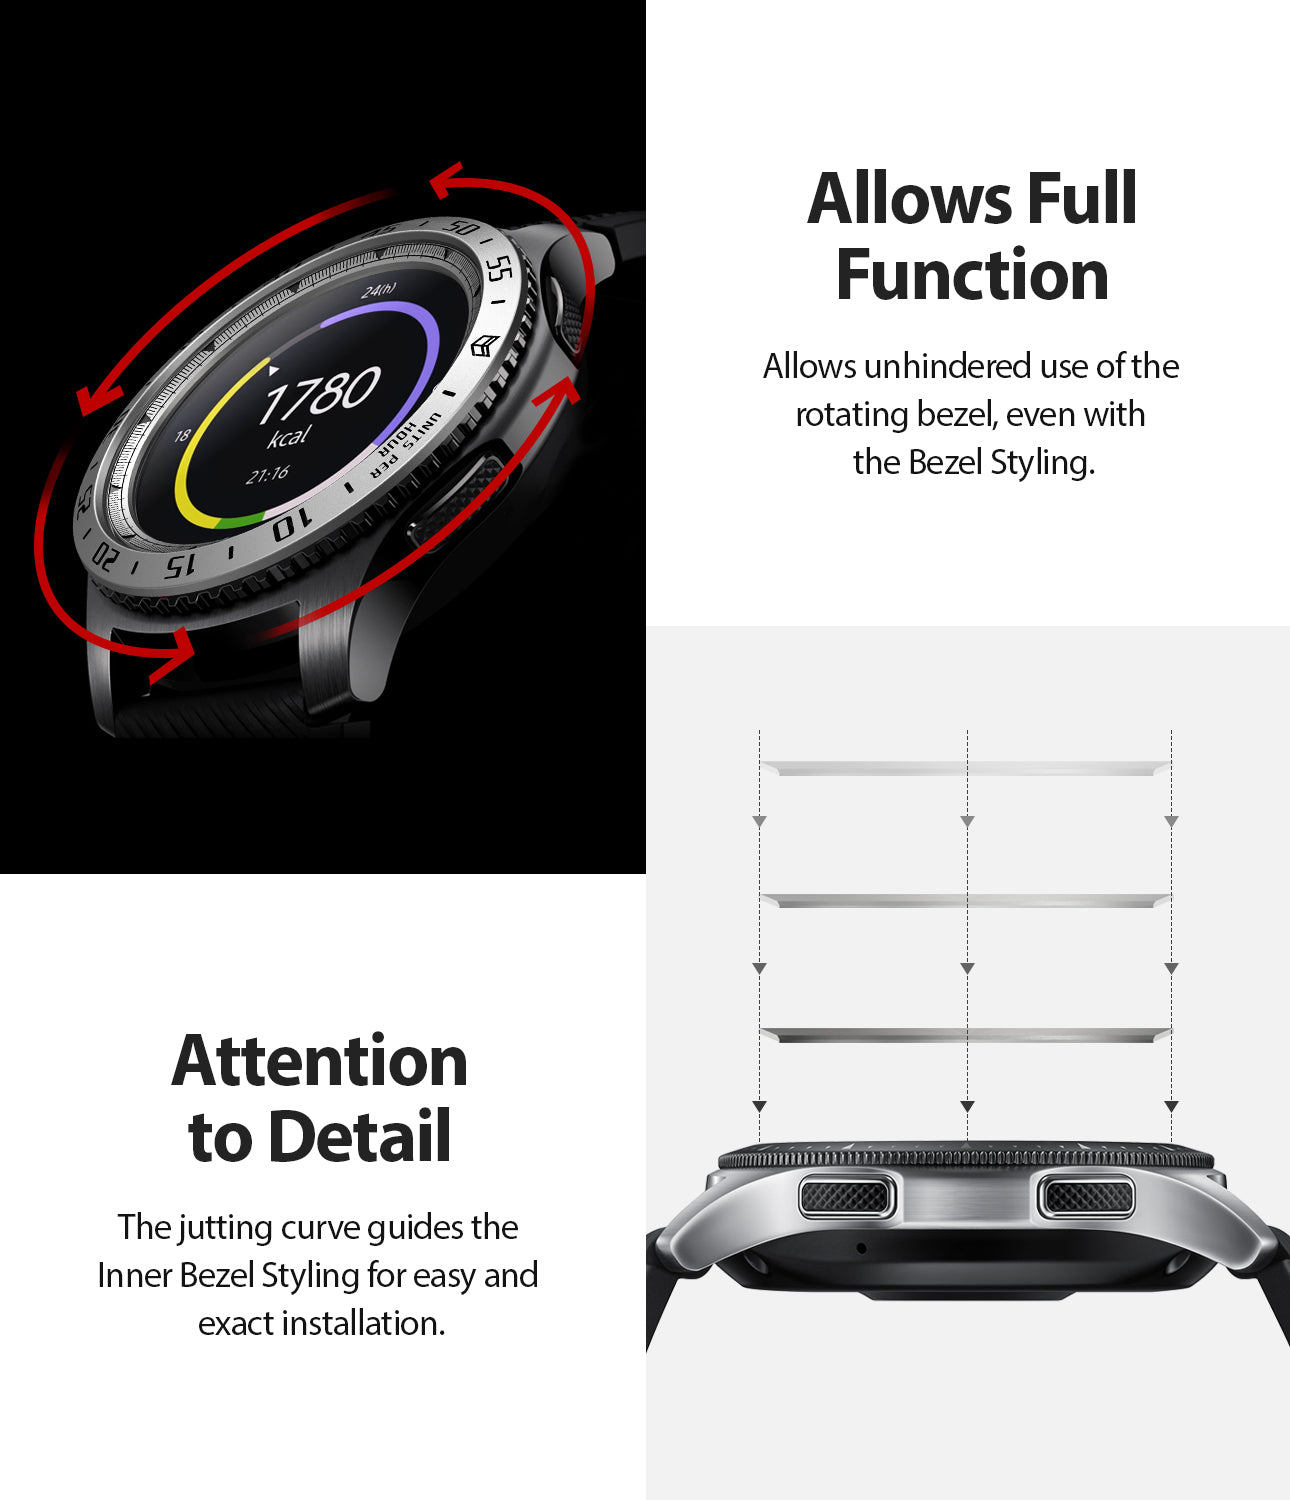 Ringke Inner Bezel Styling for Galaxy Watch 46mm, Gear S3 Frontier, Classic, GW-46-IN-01, ATTENTION TO DETAIL